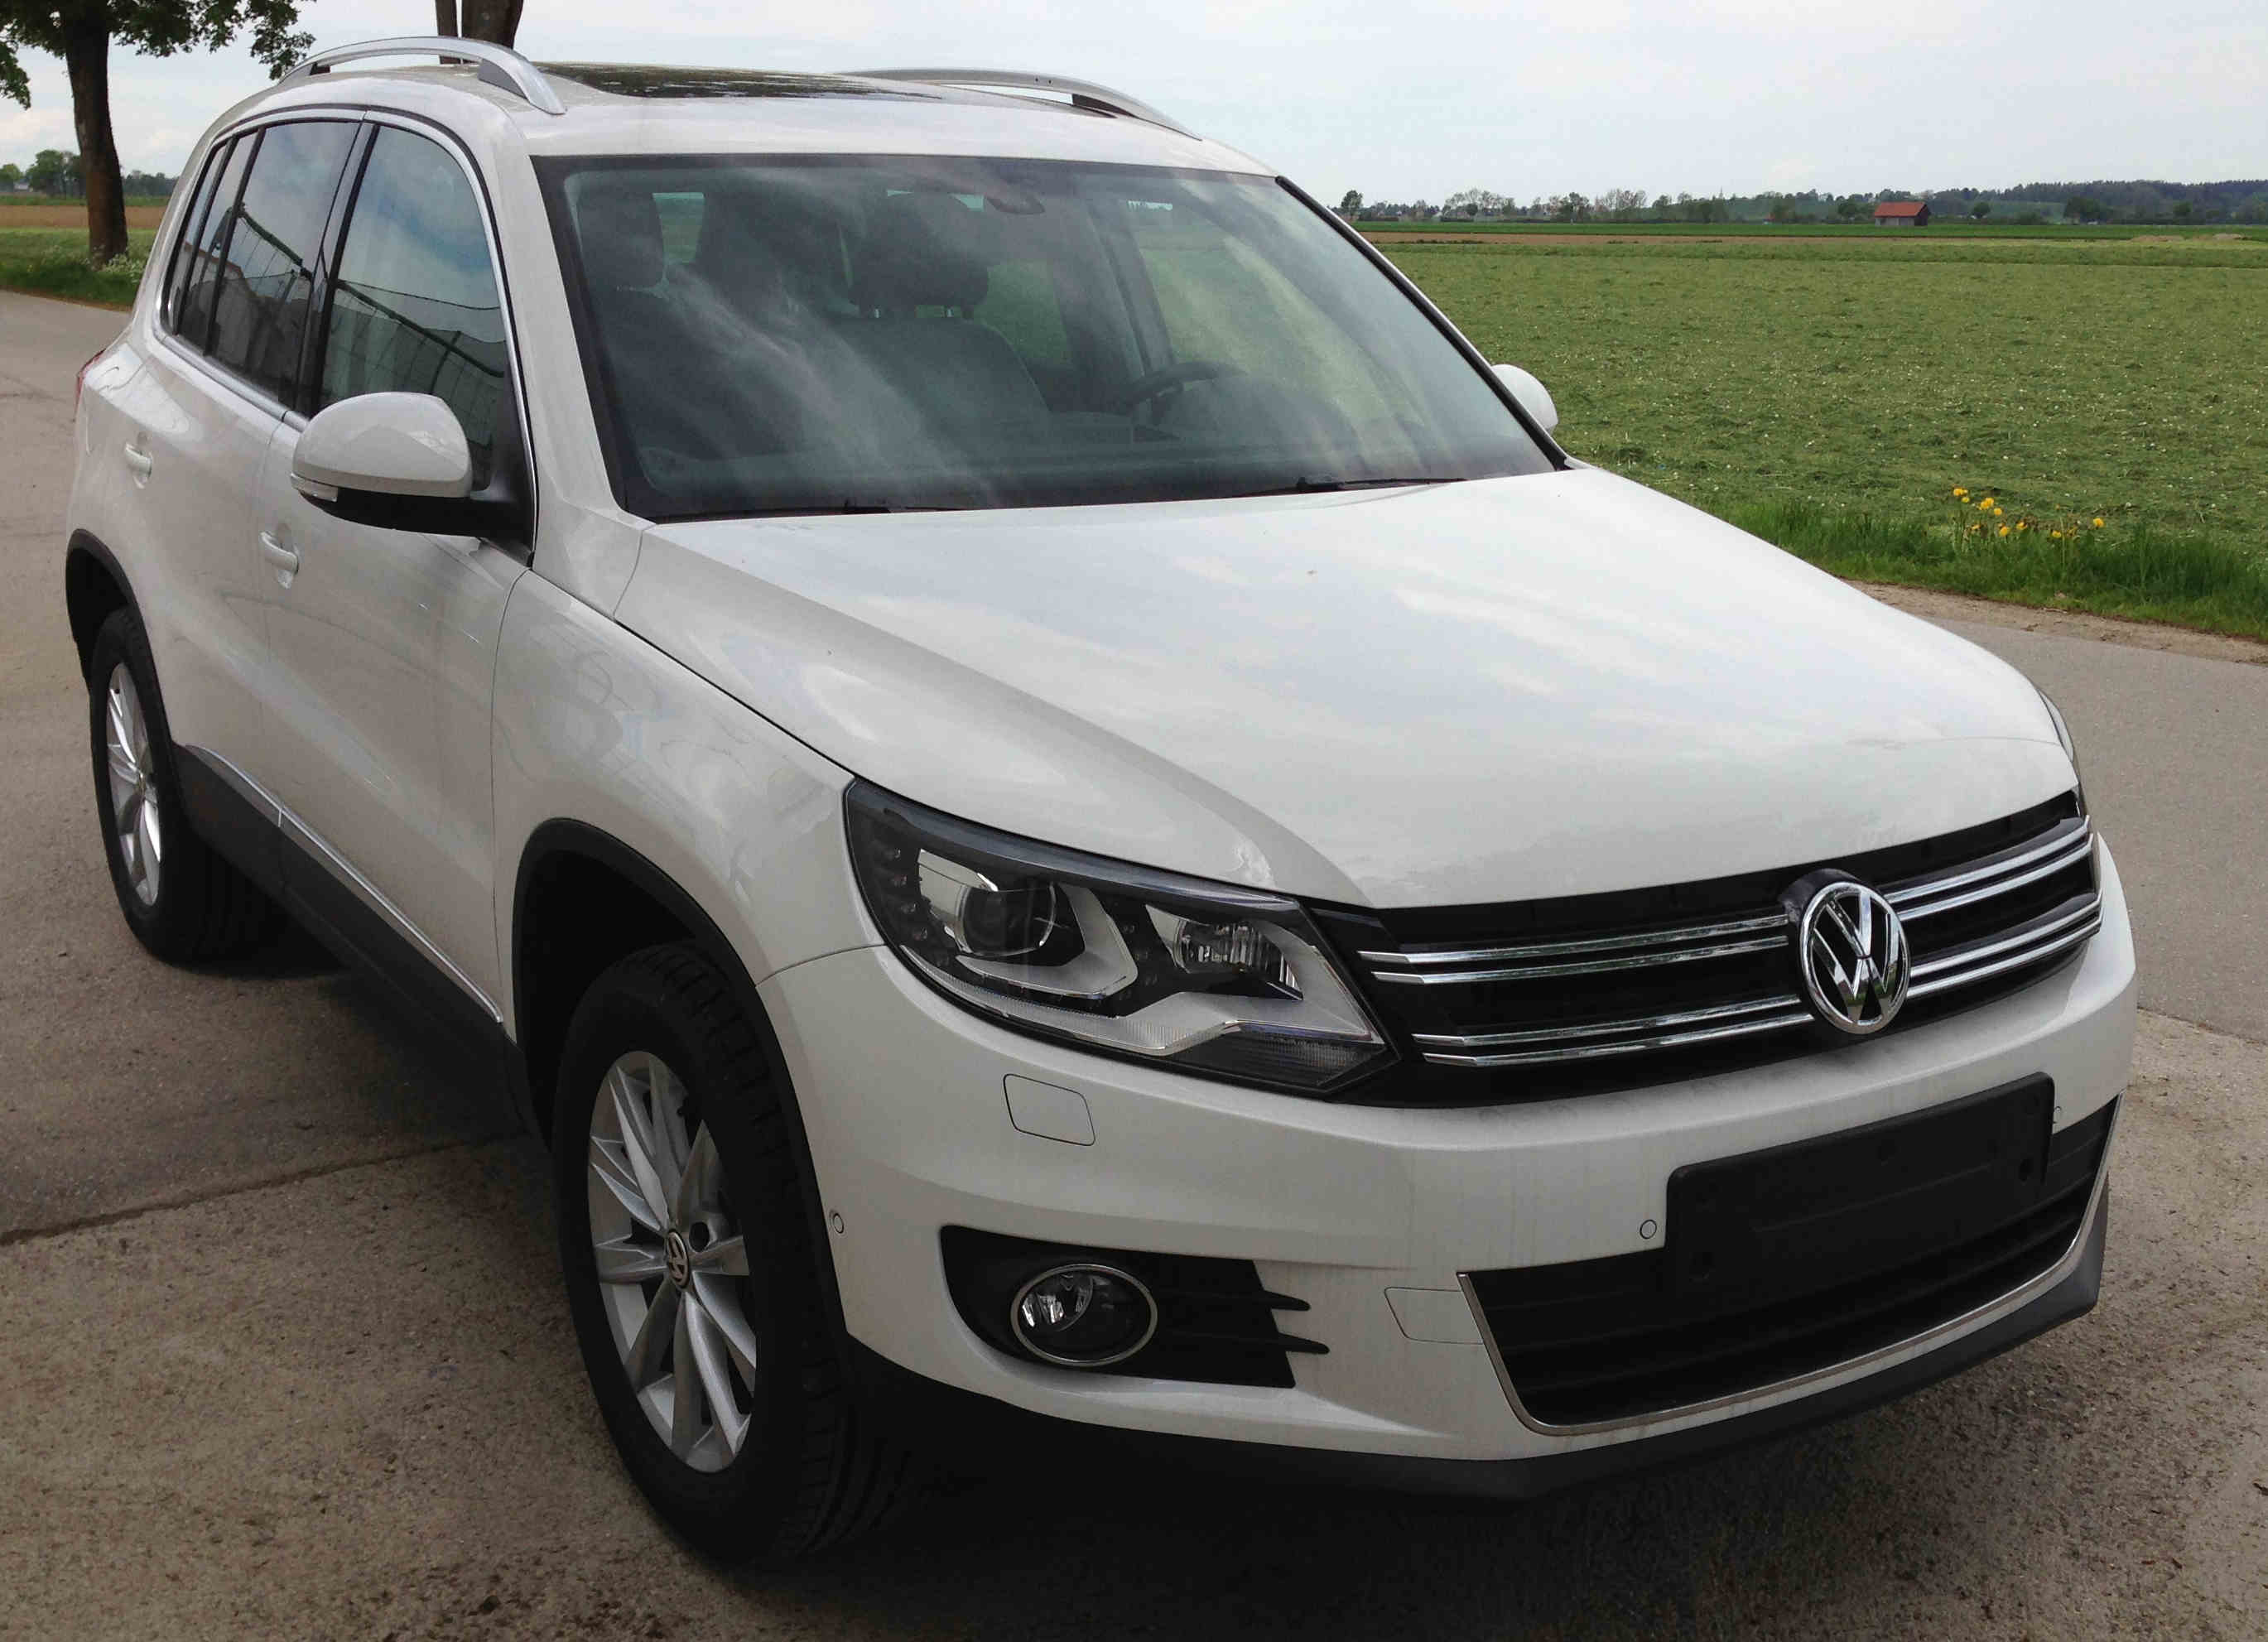 vw tiguan allspace reimport eu neuwagen bluemotion 1 4 tsi. Black Bedroom Furniture Sets. Home Design Ideas